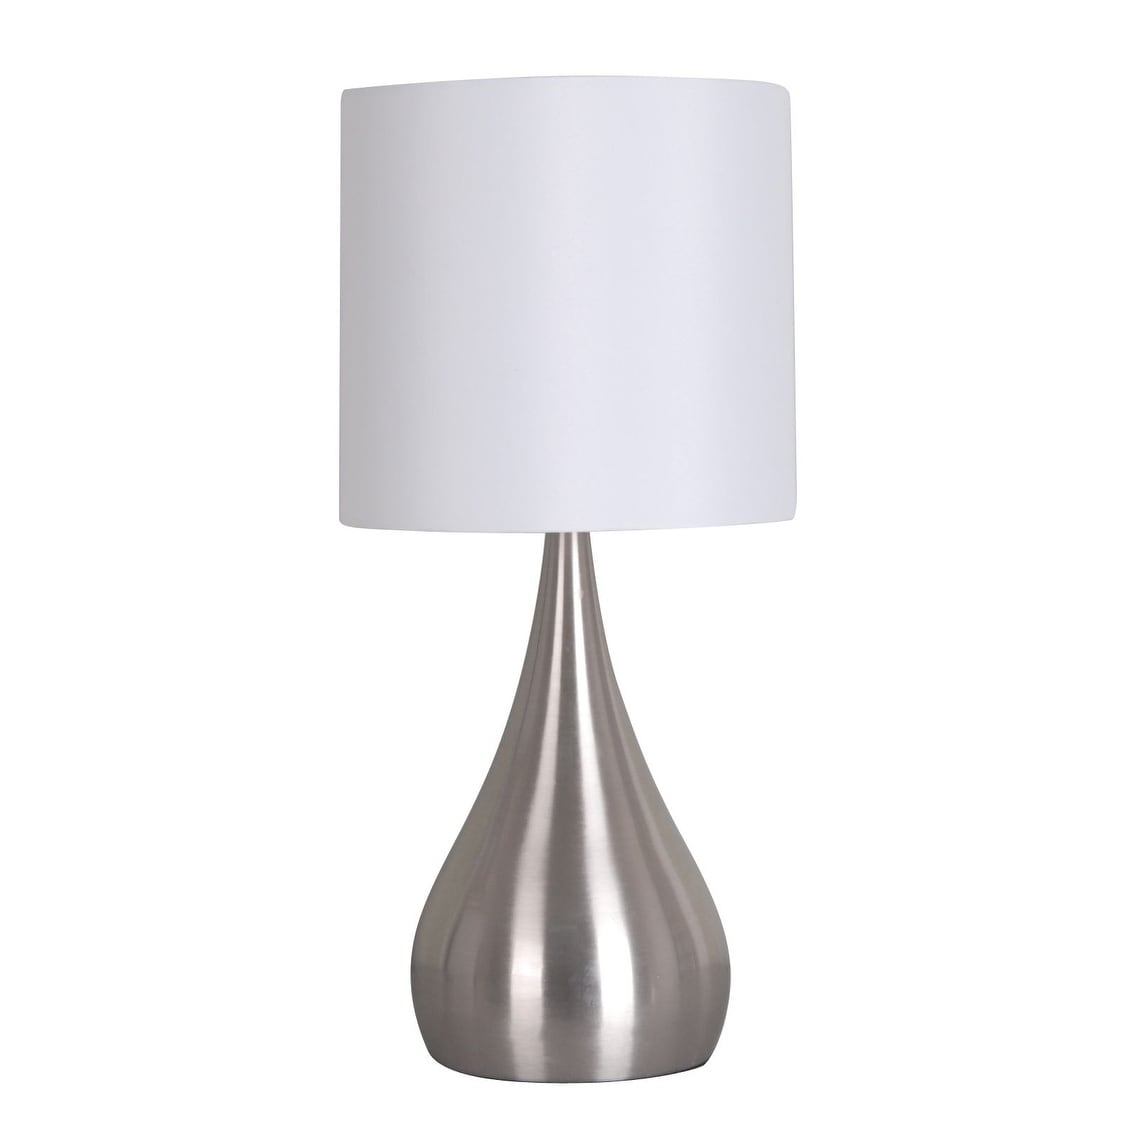 Laurel Creek Jay 18.75-inch White Shade Table Lamp